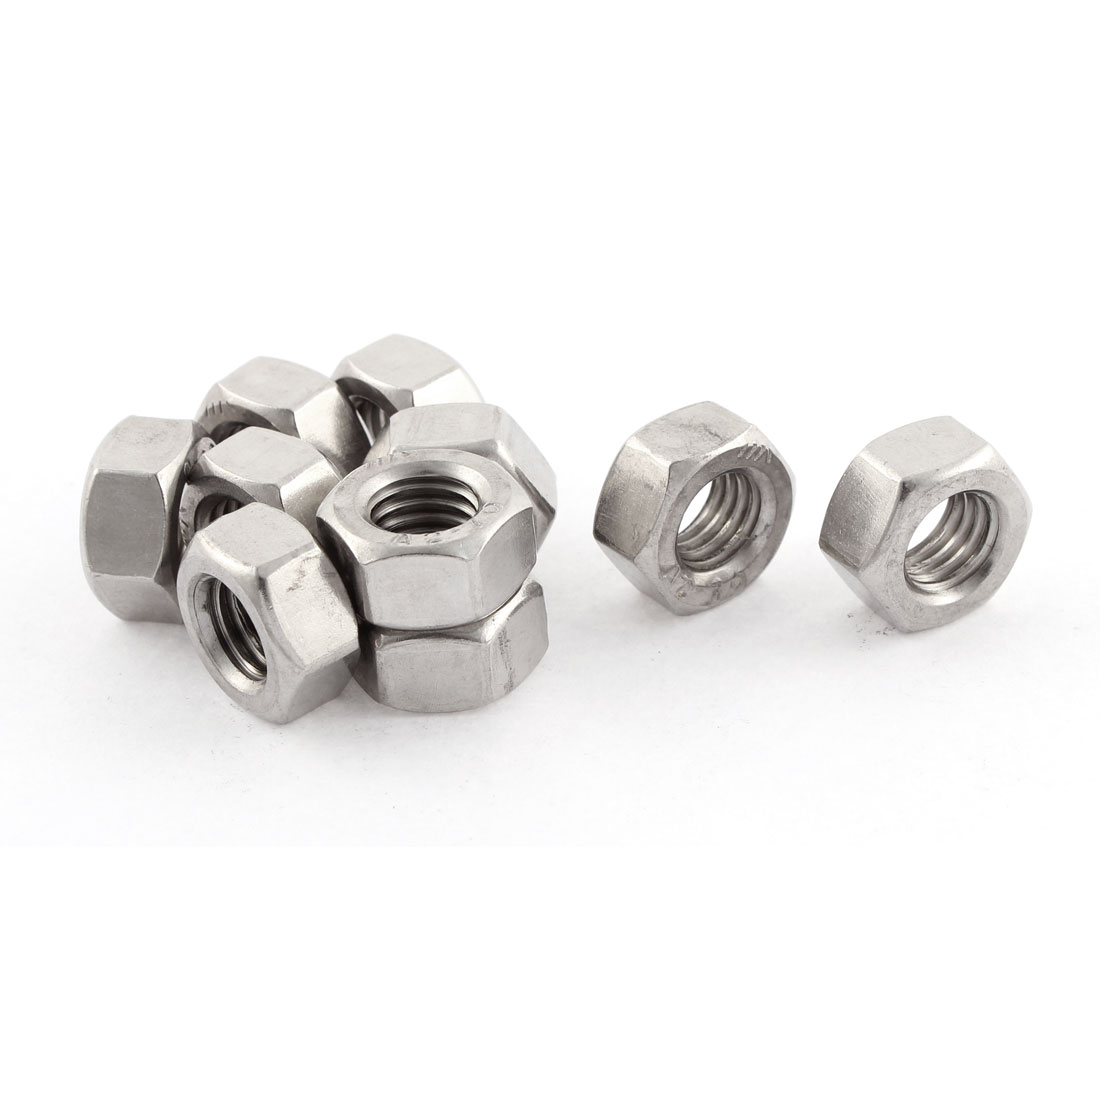 Metric M10x1.5mm Stainless Steel Finished Hexagon Hex Nut Silver Tone 10pcs